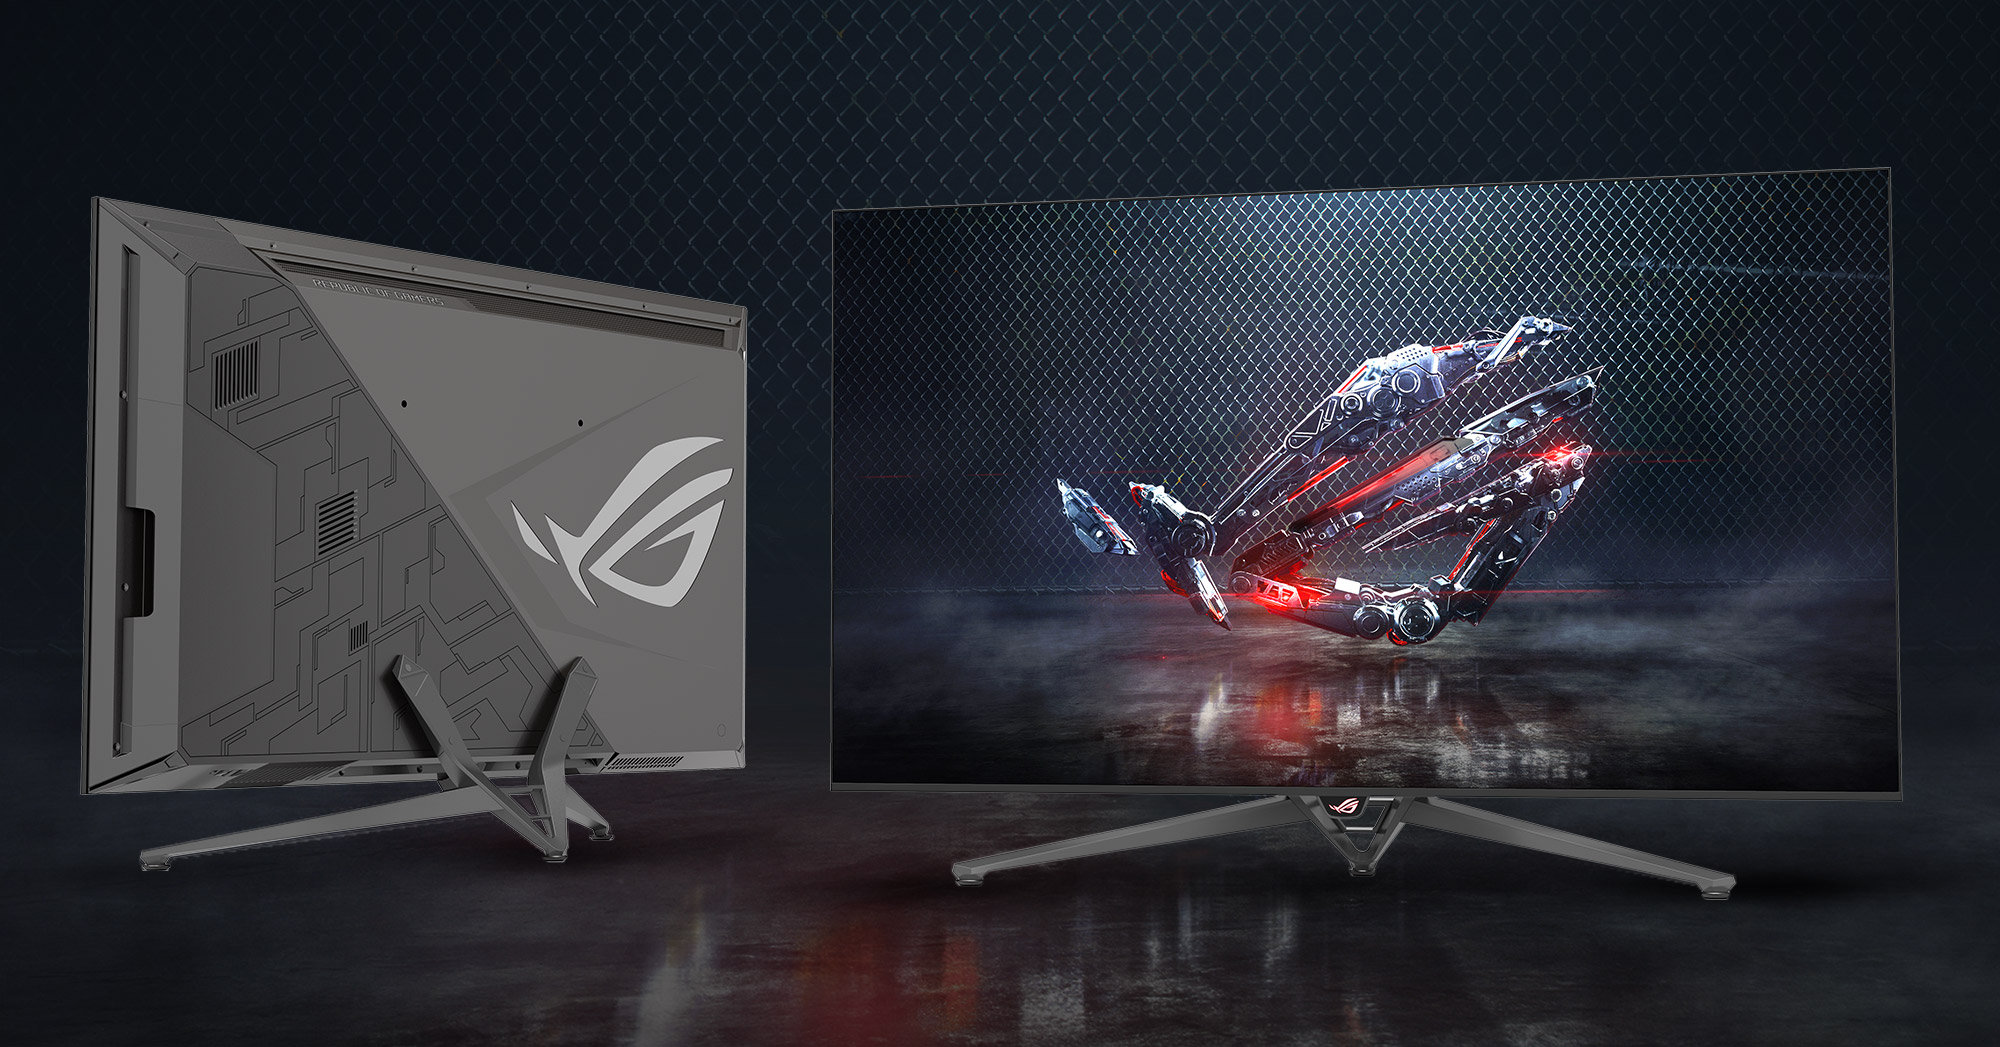 NVIDIA Announces Big Format Gaming Displays: 65-inch 4K@120Hz HDR